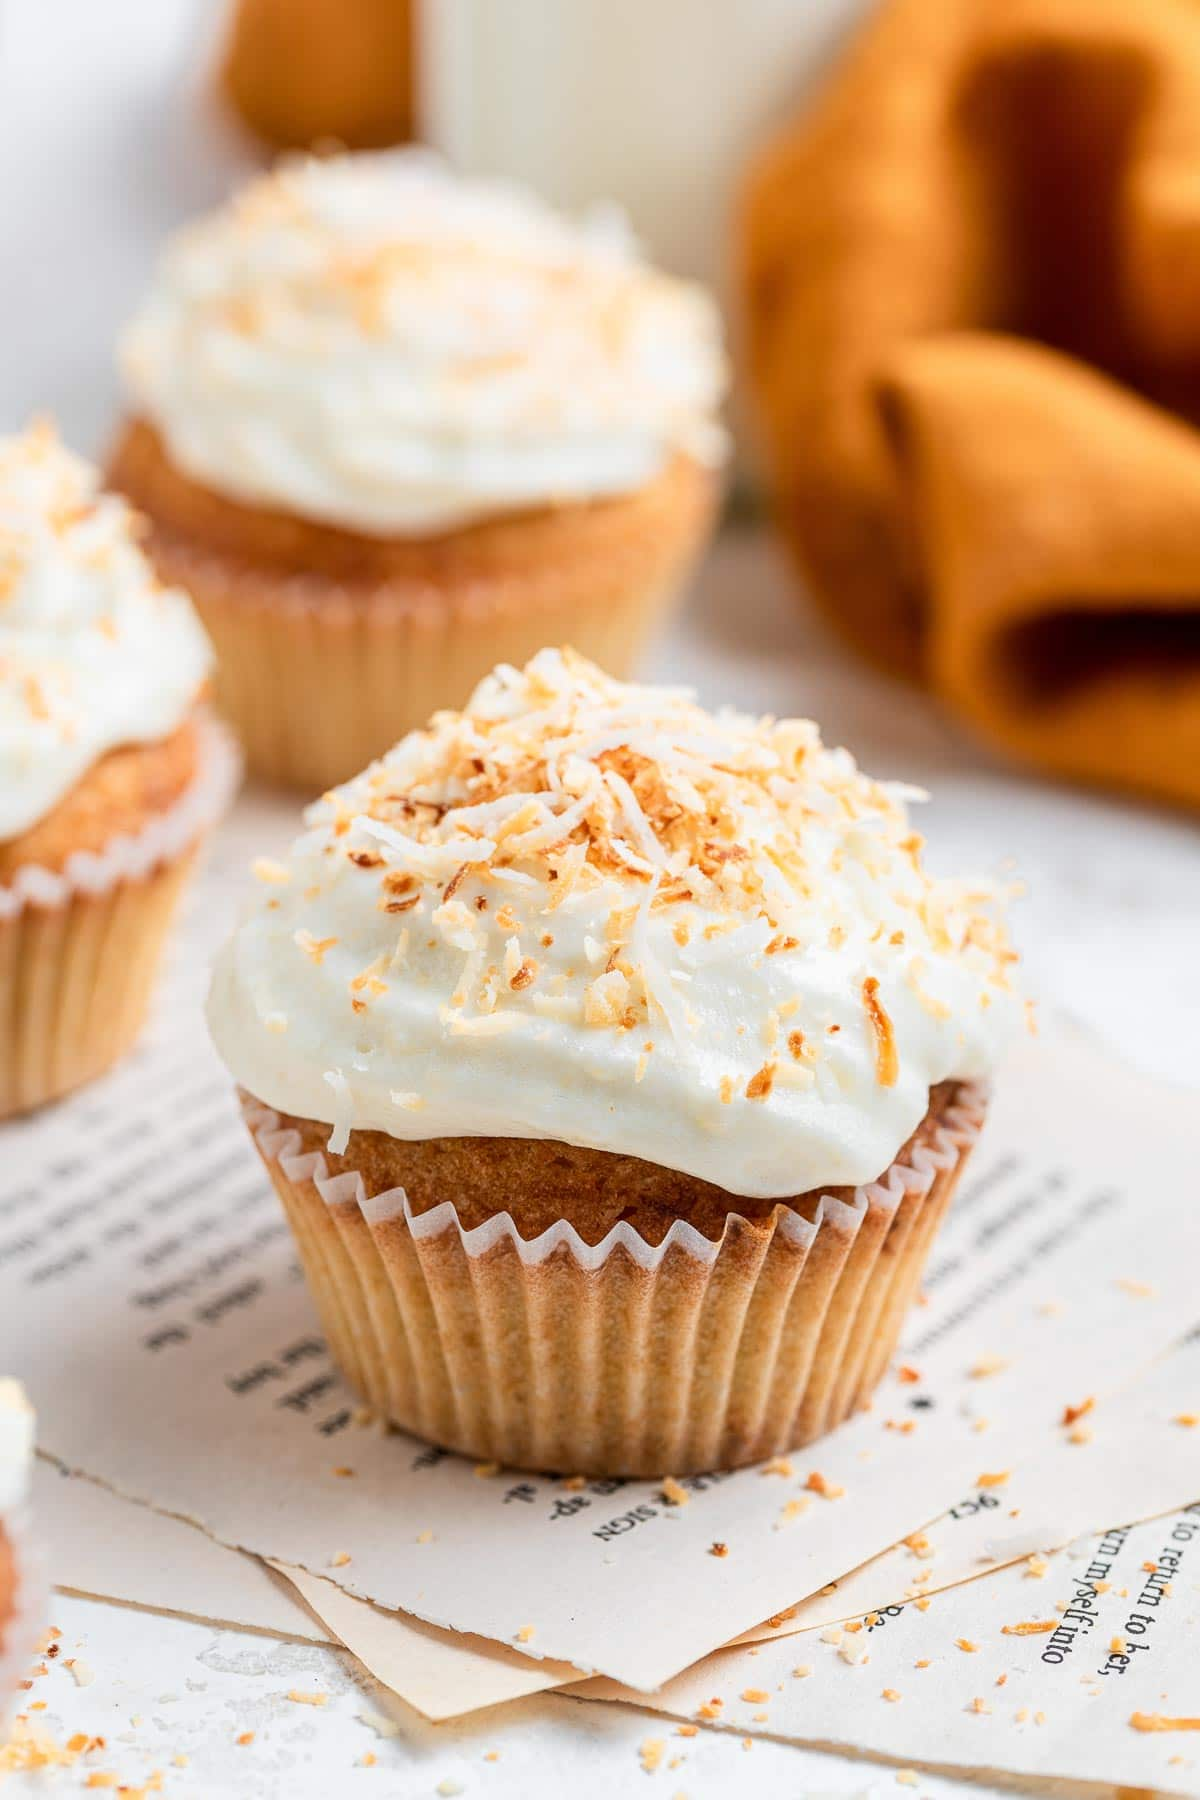 Up close of coconut cupcake decorated with coconut flakes.